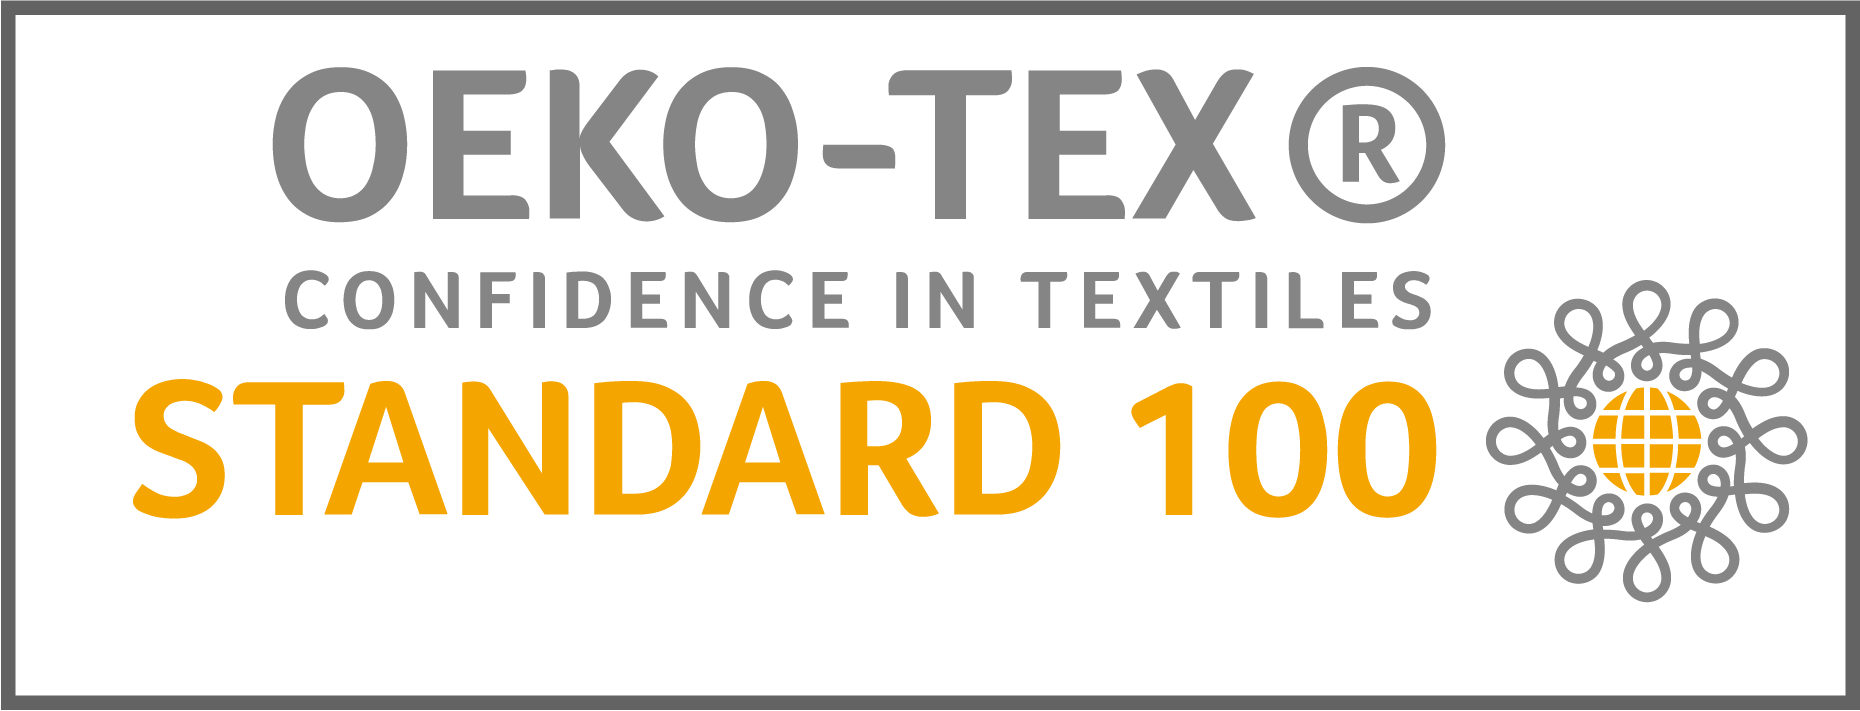 Product OEKO-TEX certified